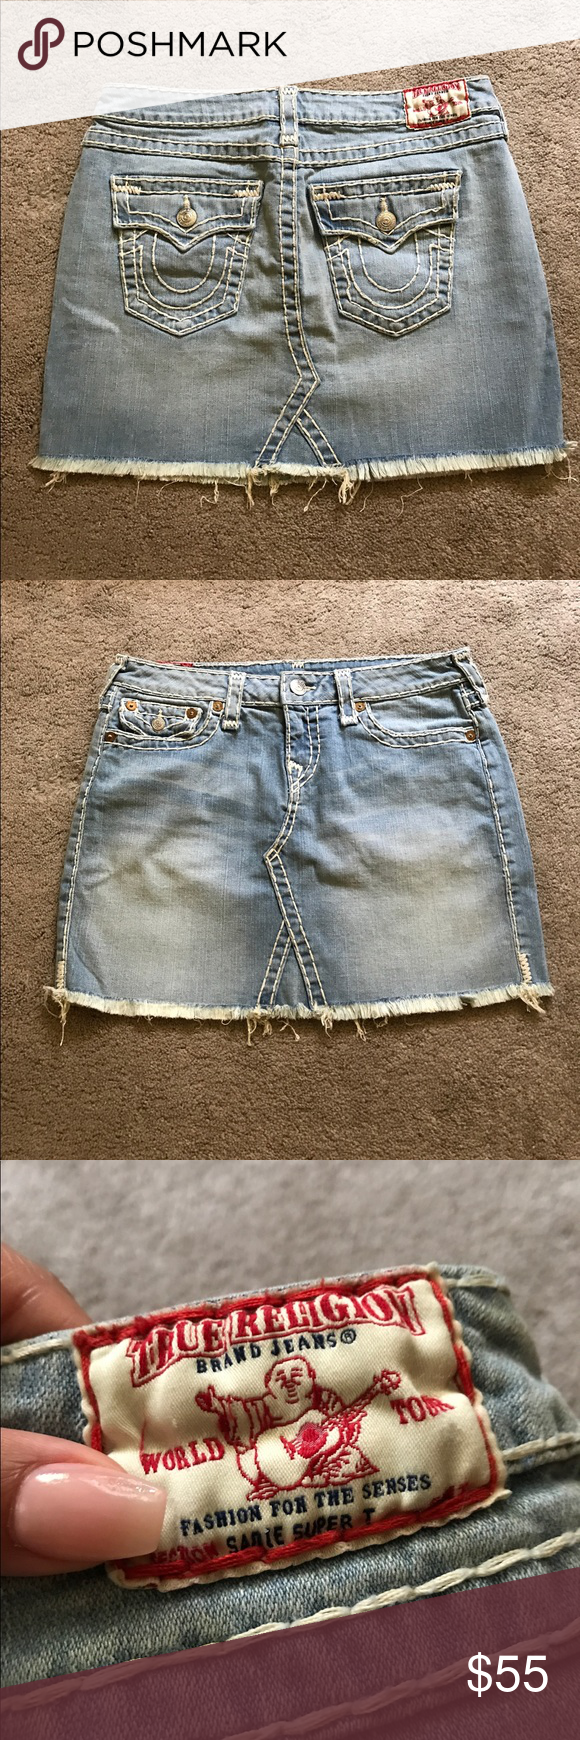 True religion denim skirt True Religion denim skirt. Size 30 True Religion Skirts Mini